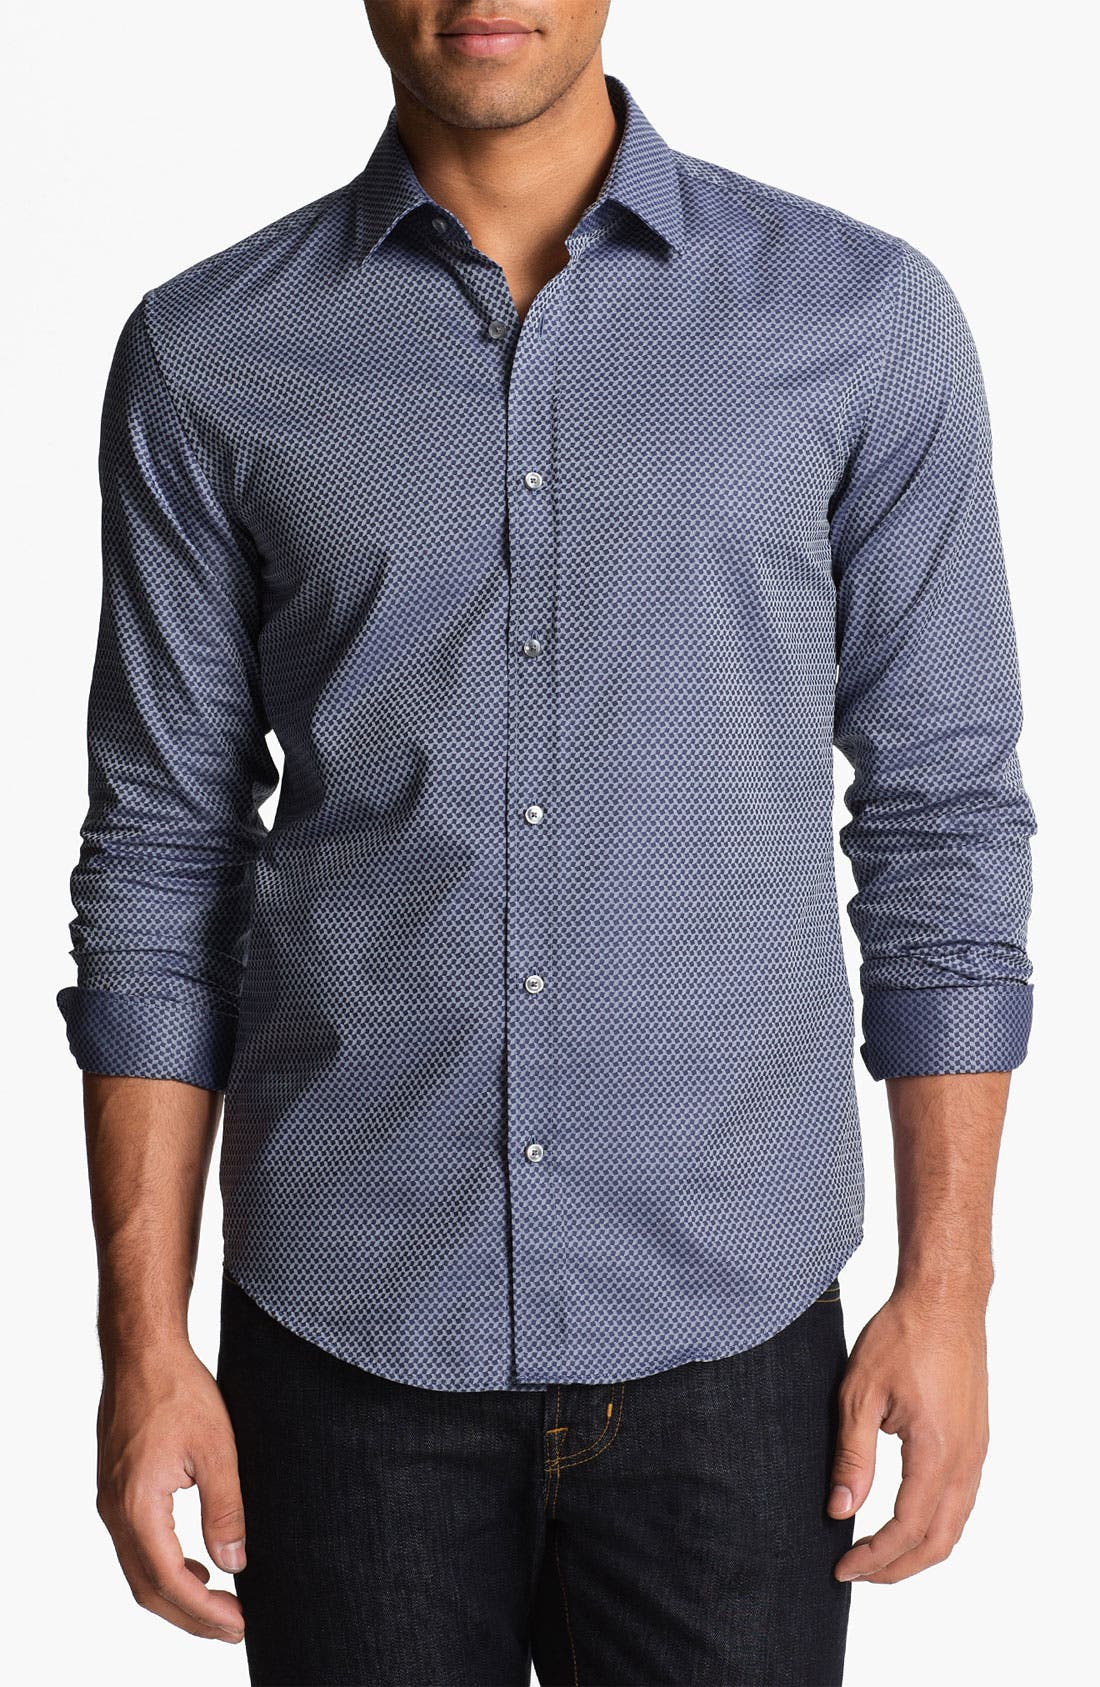 Alternate Image 1 Selected - BOSS Black 'Ronny' Slim Fit Sport Shirt